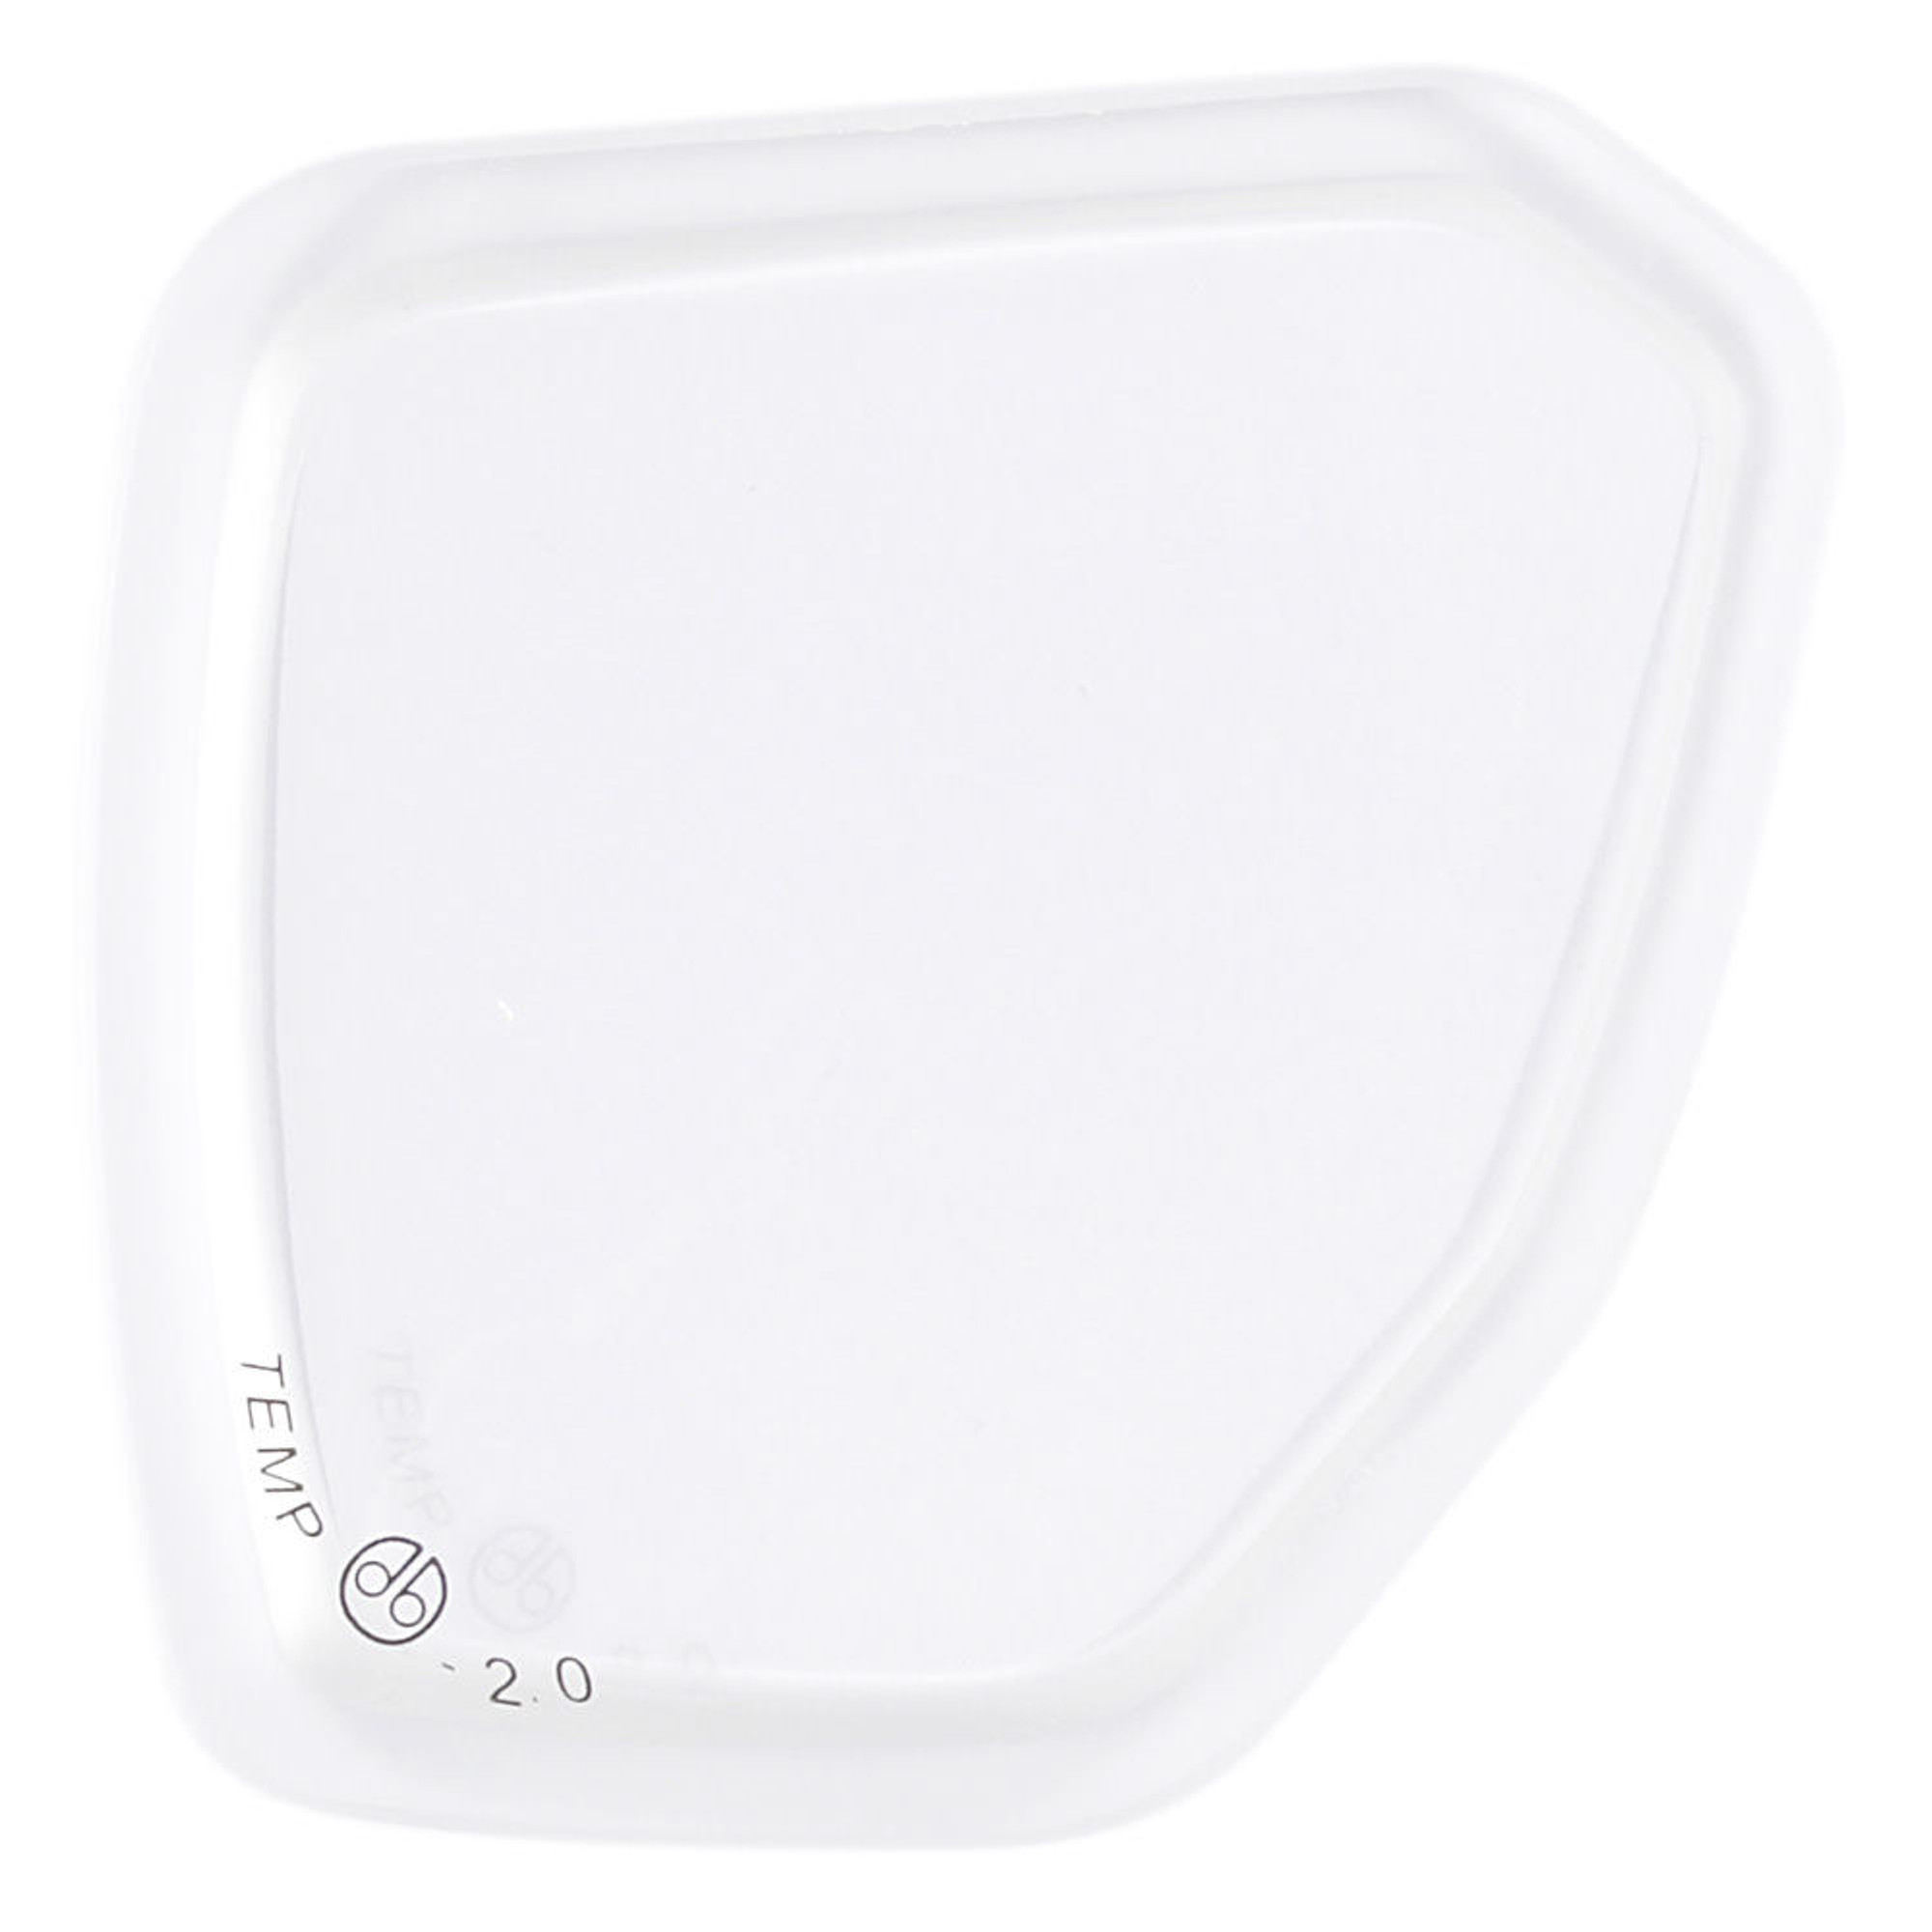 Maui and Spirit 2 Replacement Lenses